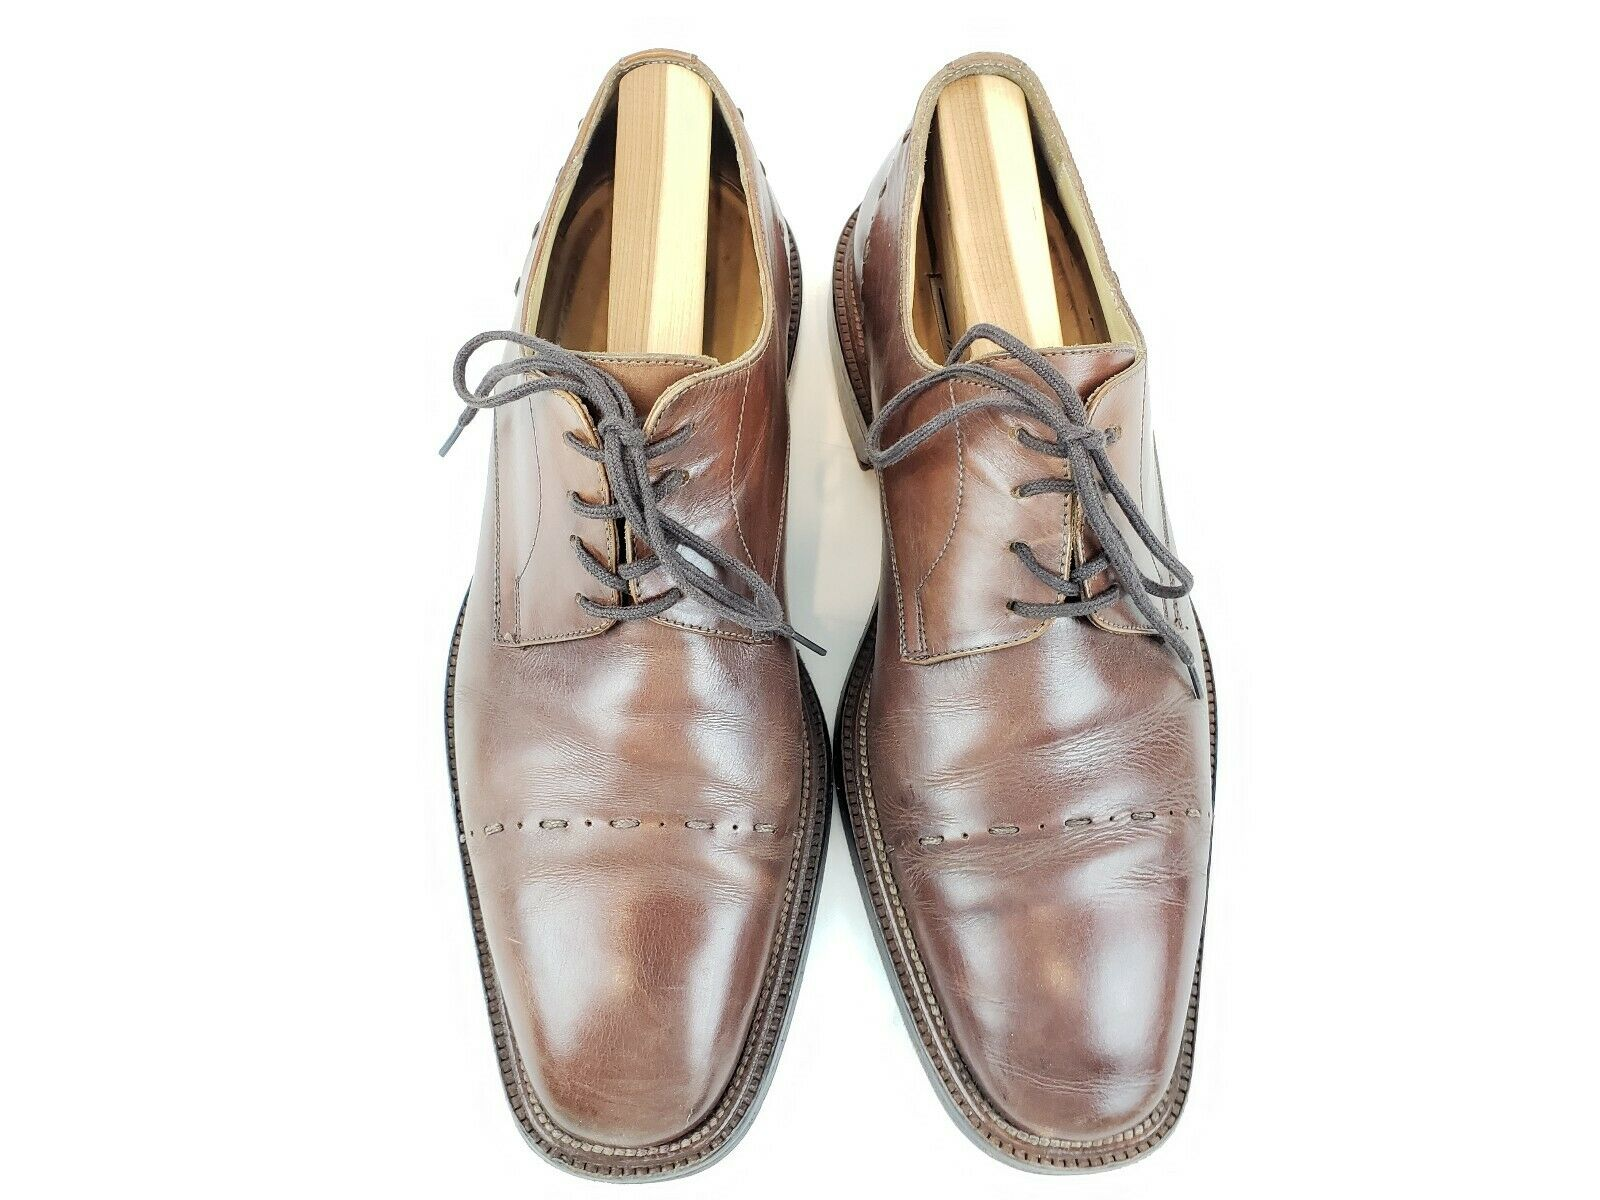 Mercanti Fiorentini Men's Brown Leather Wingtip Oxford shoes Sz 8.5M Made